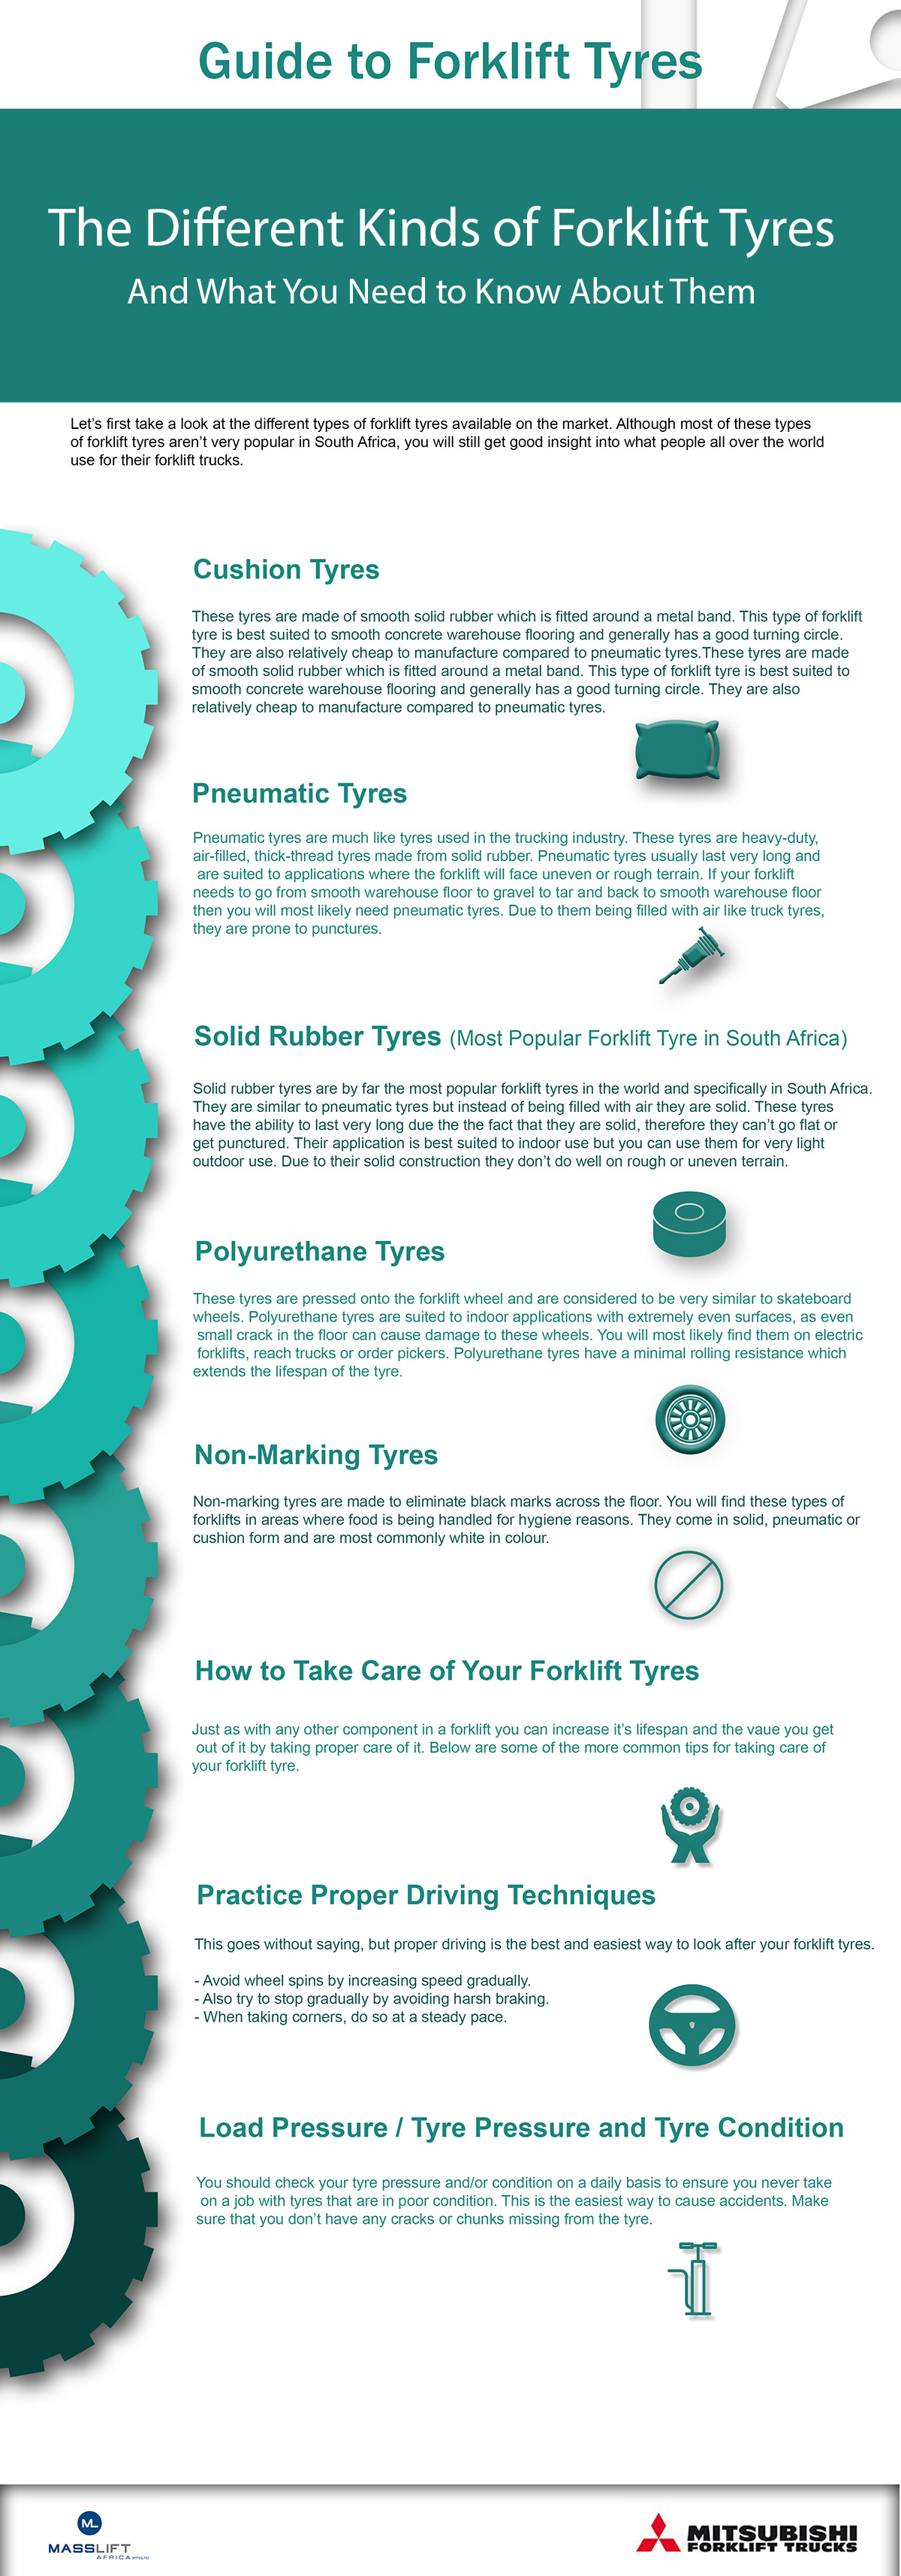 Forklift tyre types